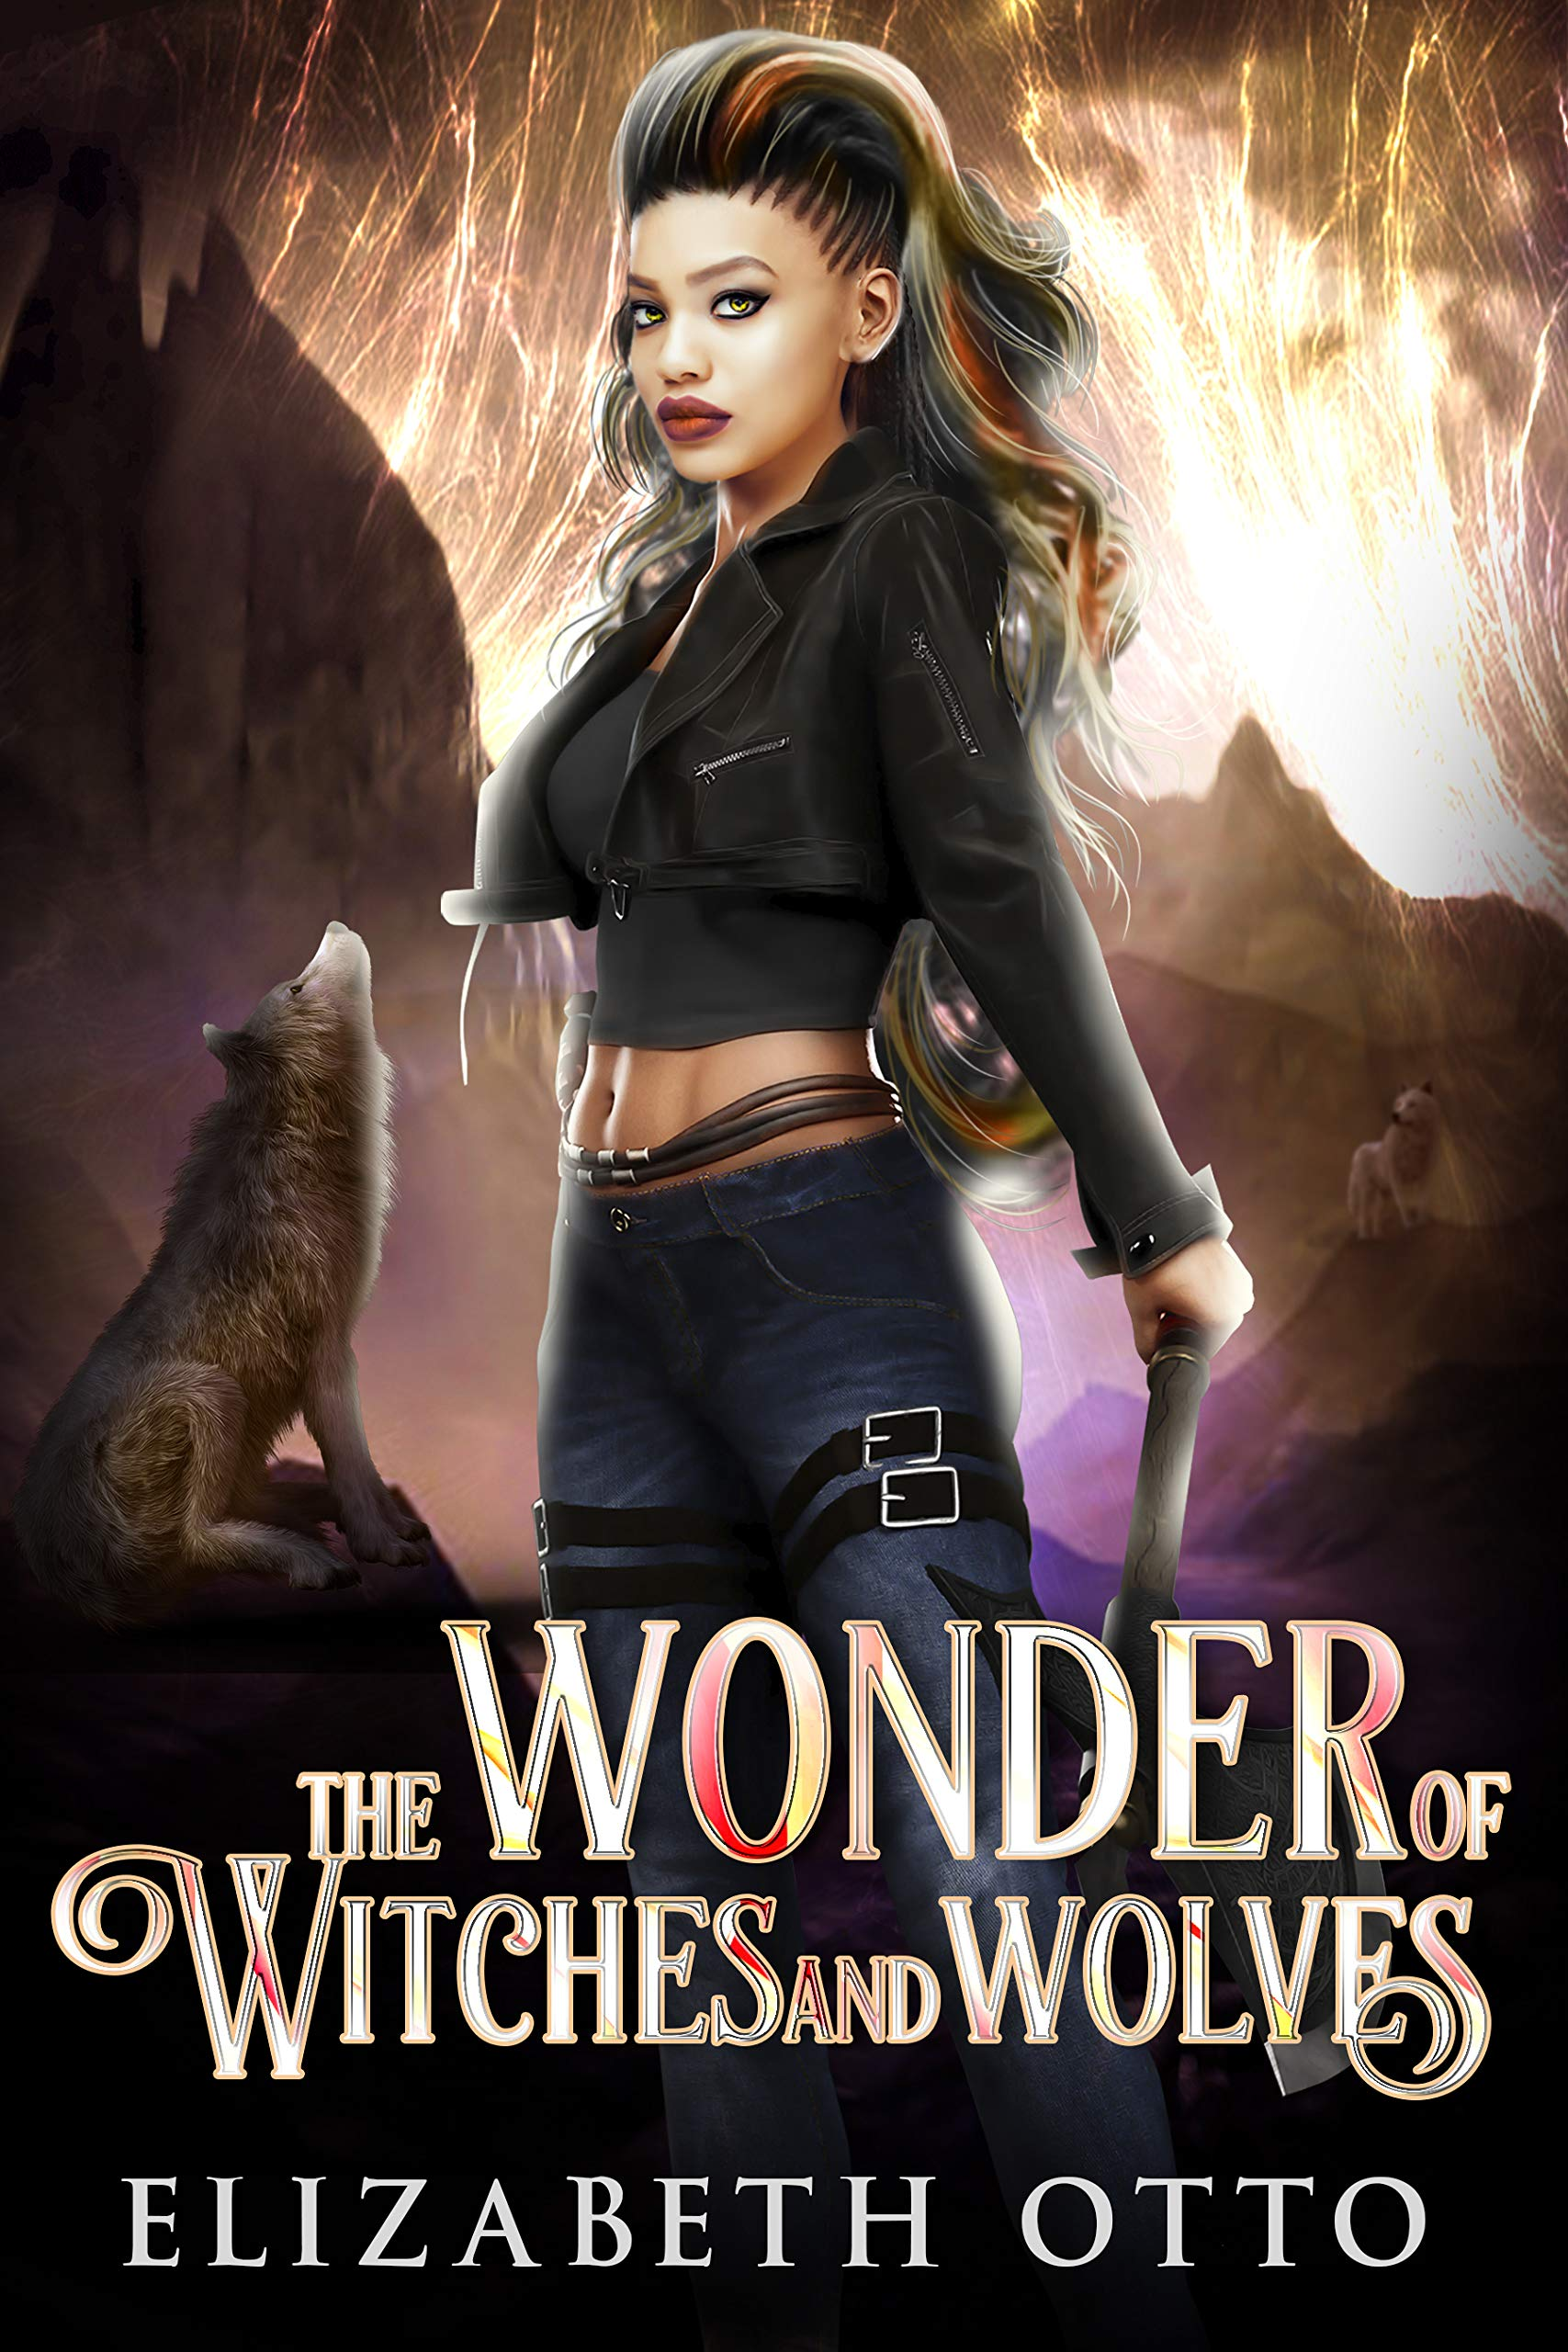 The Wonder of Witches and Wolves (A Wonder Robinson Novel Book 1)